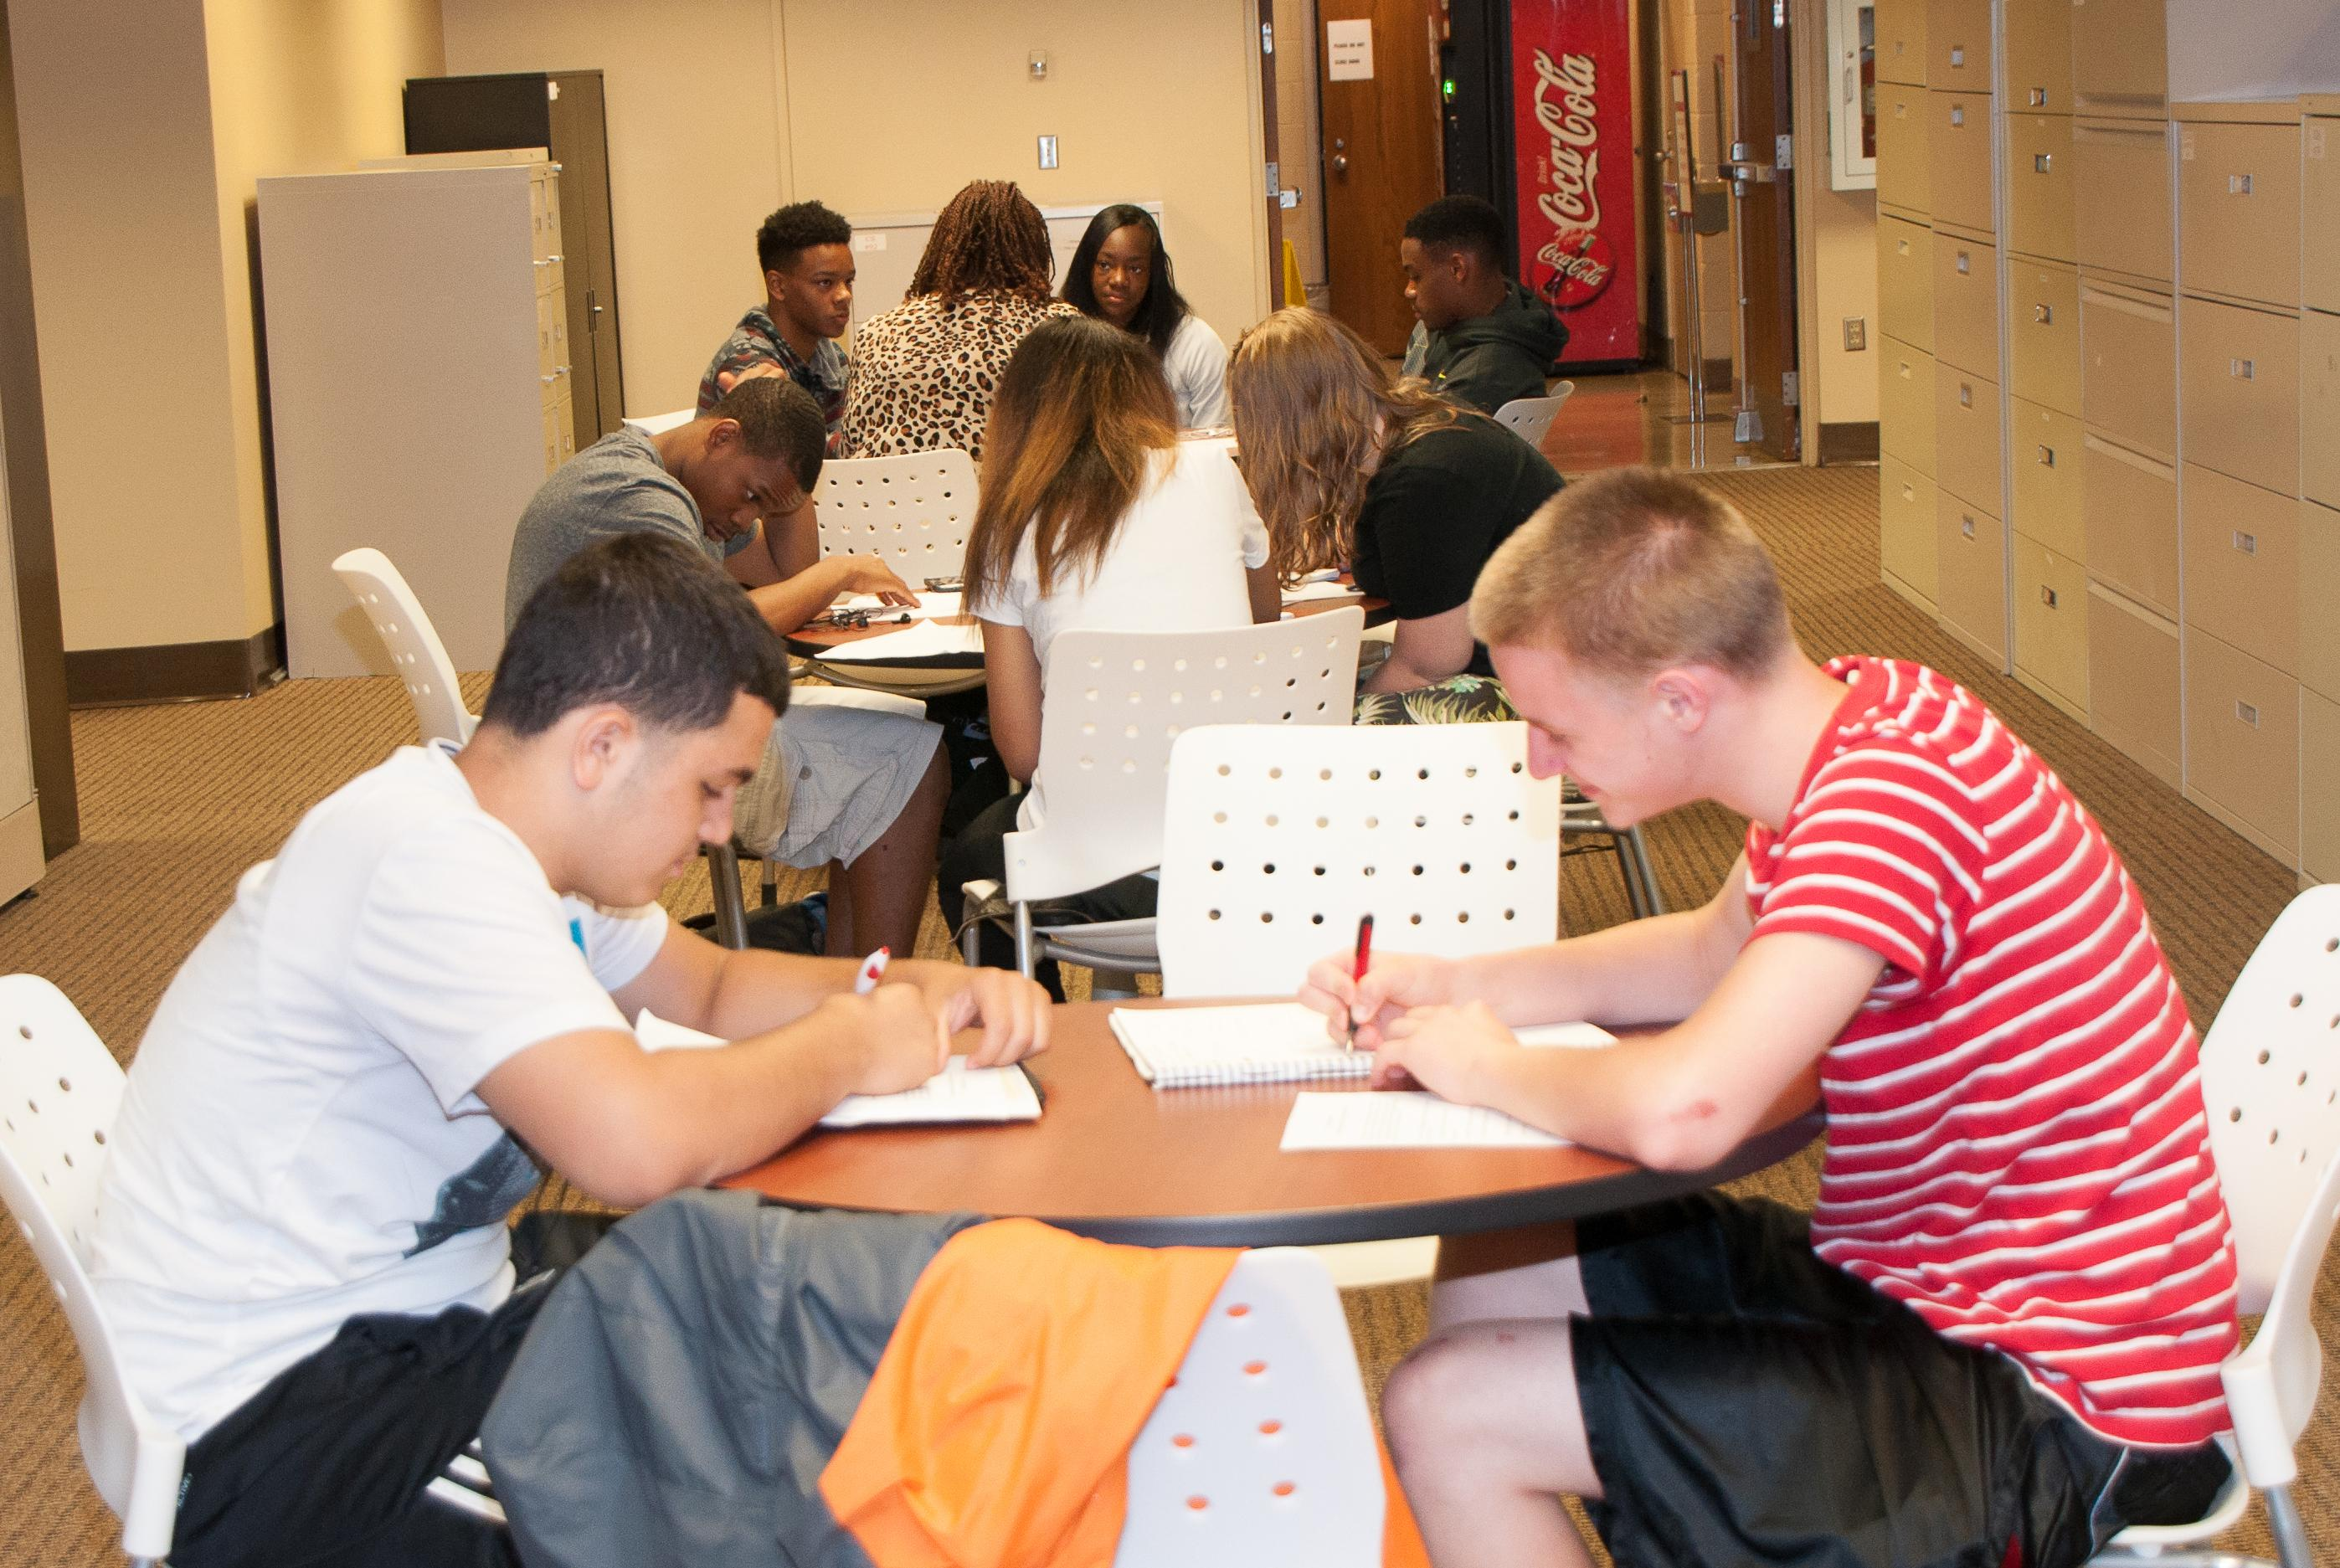 Two students working at a table